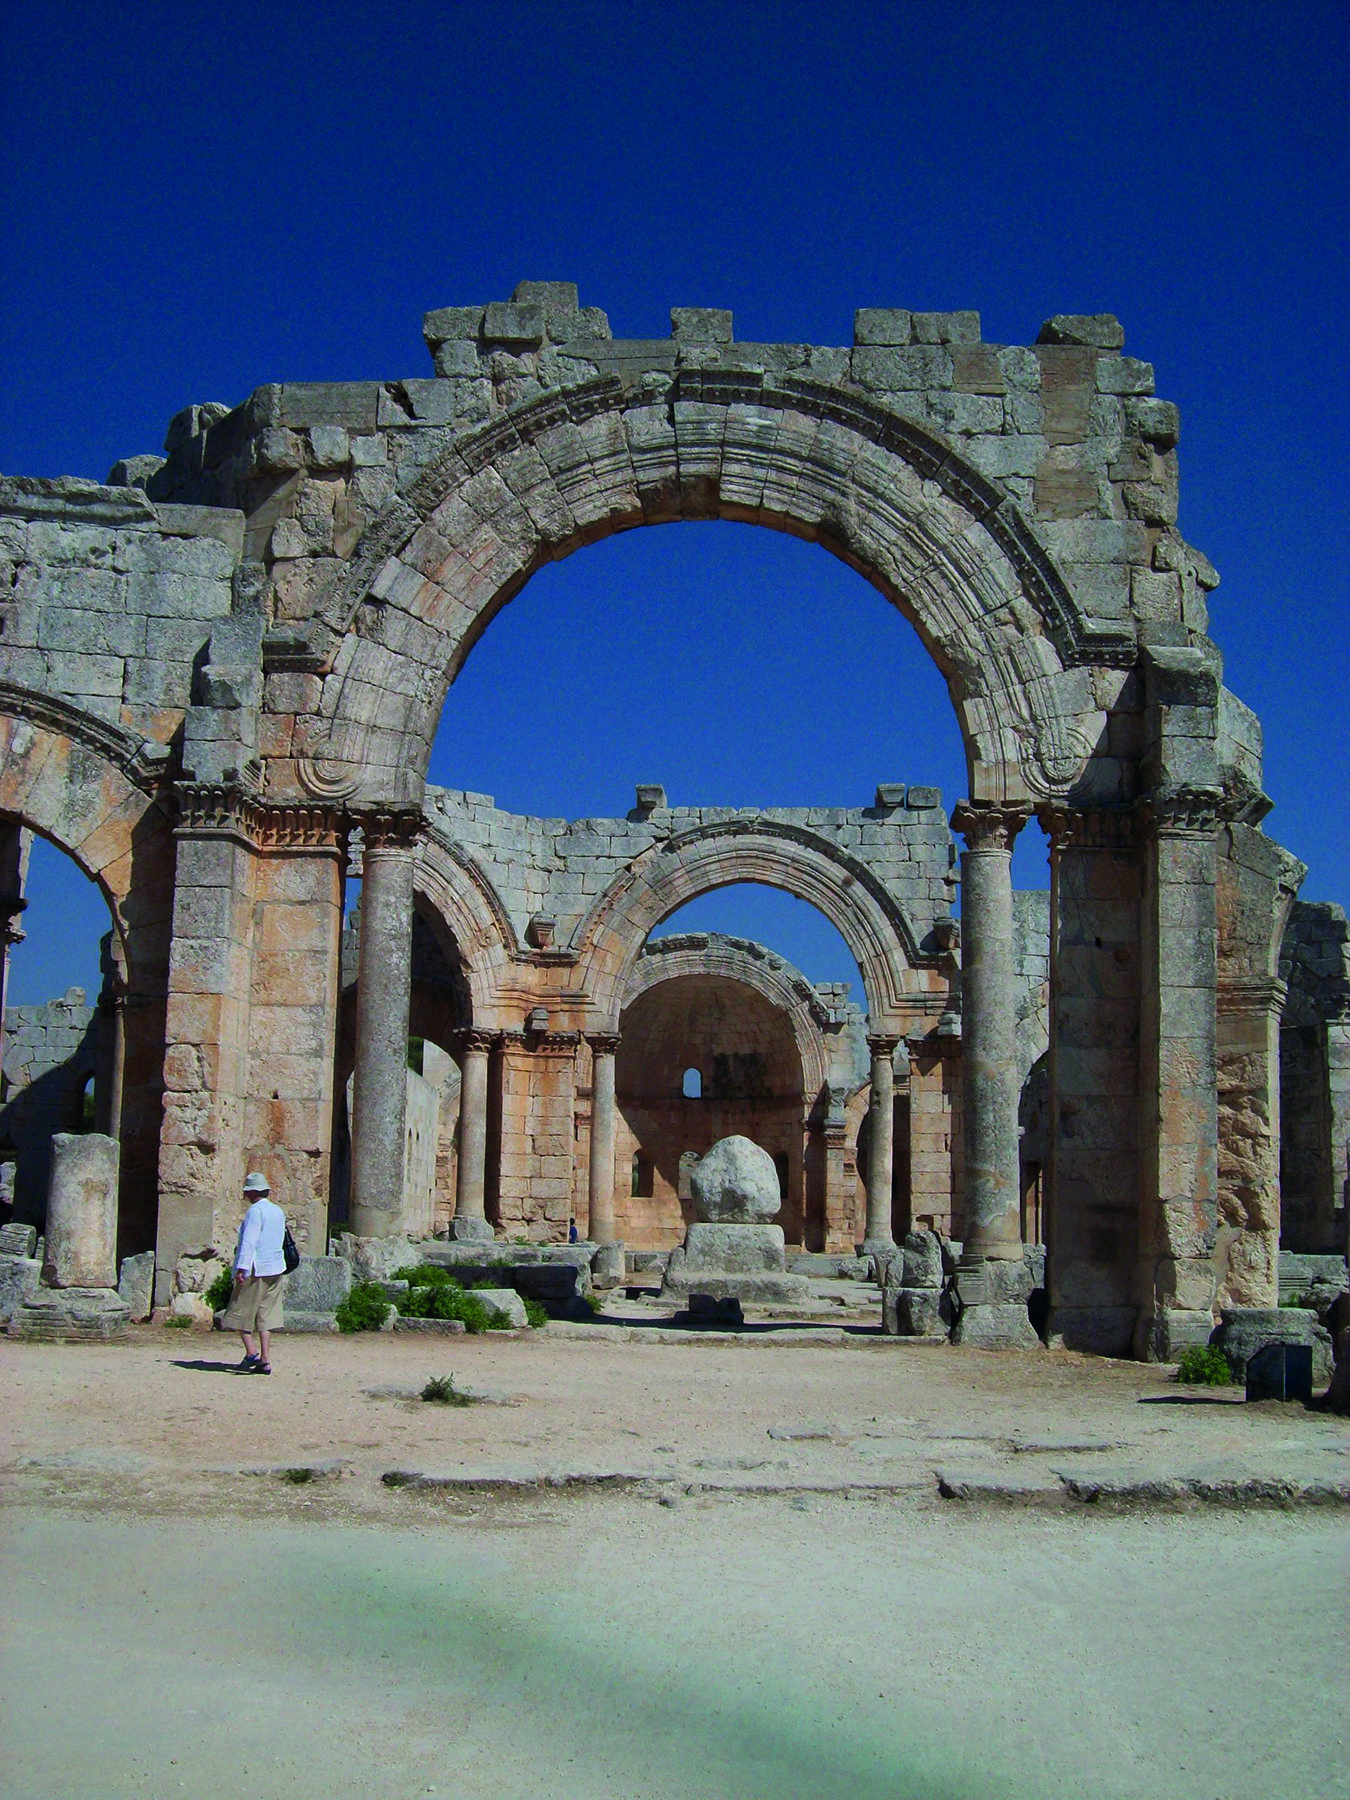 The church of St Simeon Stylites in Syria, before it was bombed earlier this year. J P BURGESS